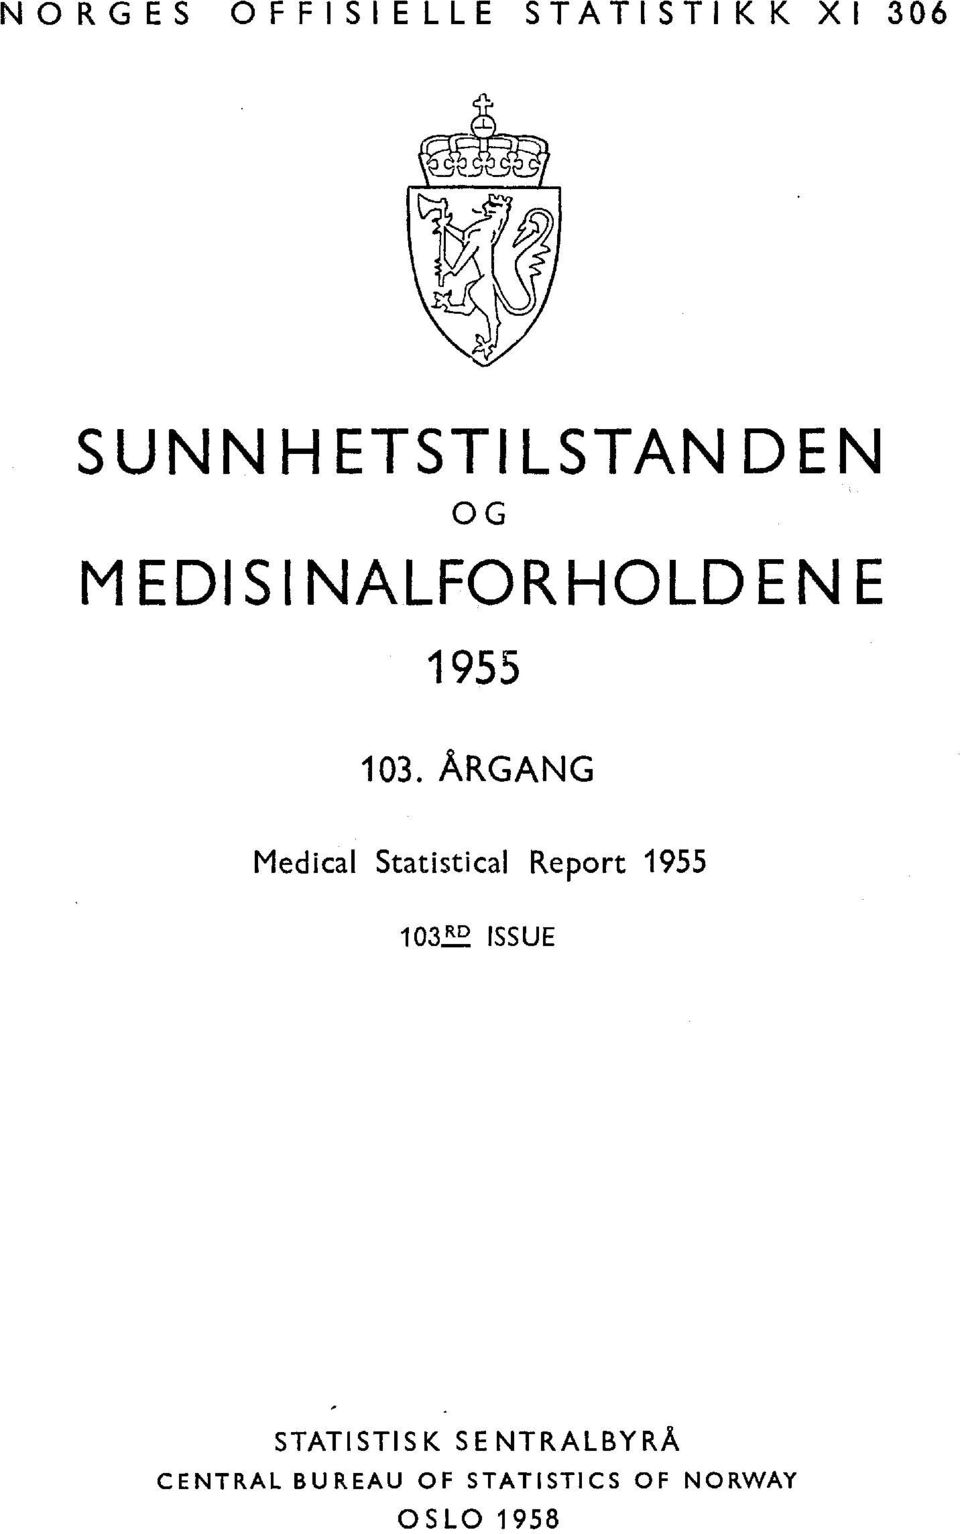 ARGANG Medical Statistical Report 0 ISSUE